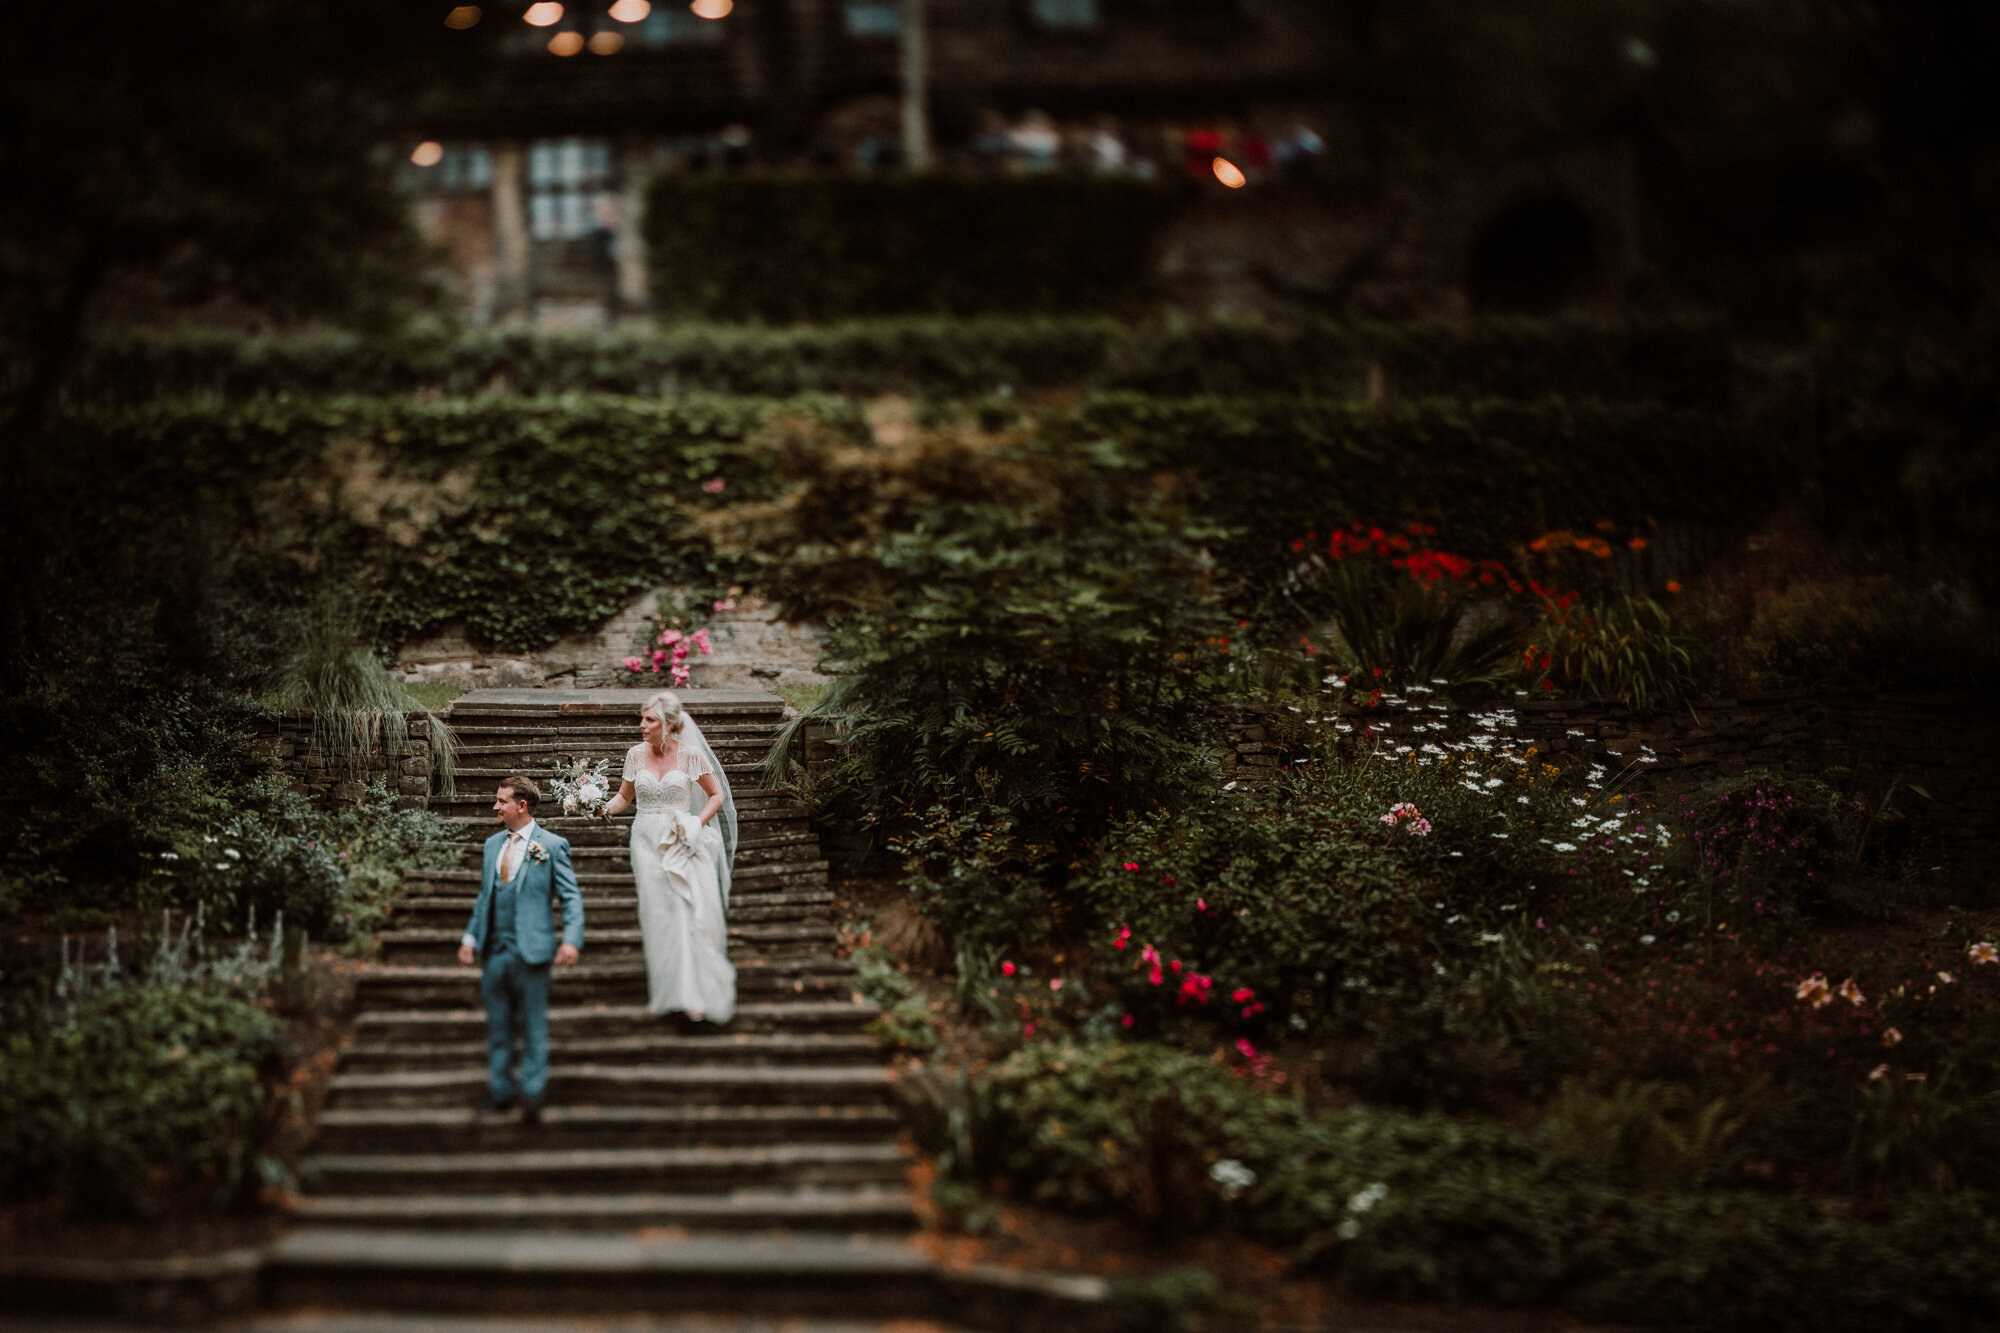 non- traditional wedding photographer engagement photographer yorkshire u.k. creative outdoor location portrait photography North Yorkshire leeds ripon york alternative wedding photography elopement photographer destination photographer tilt shift photography